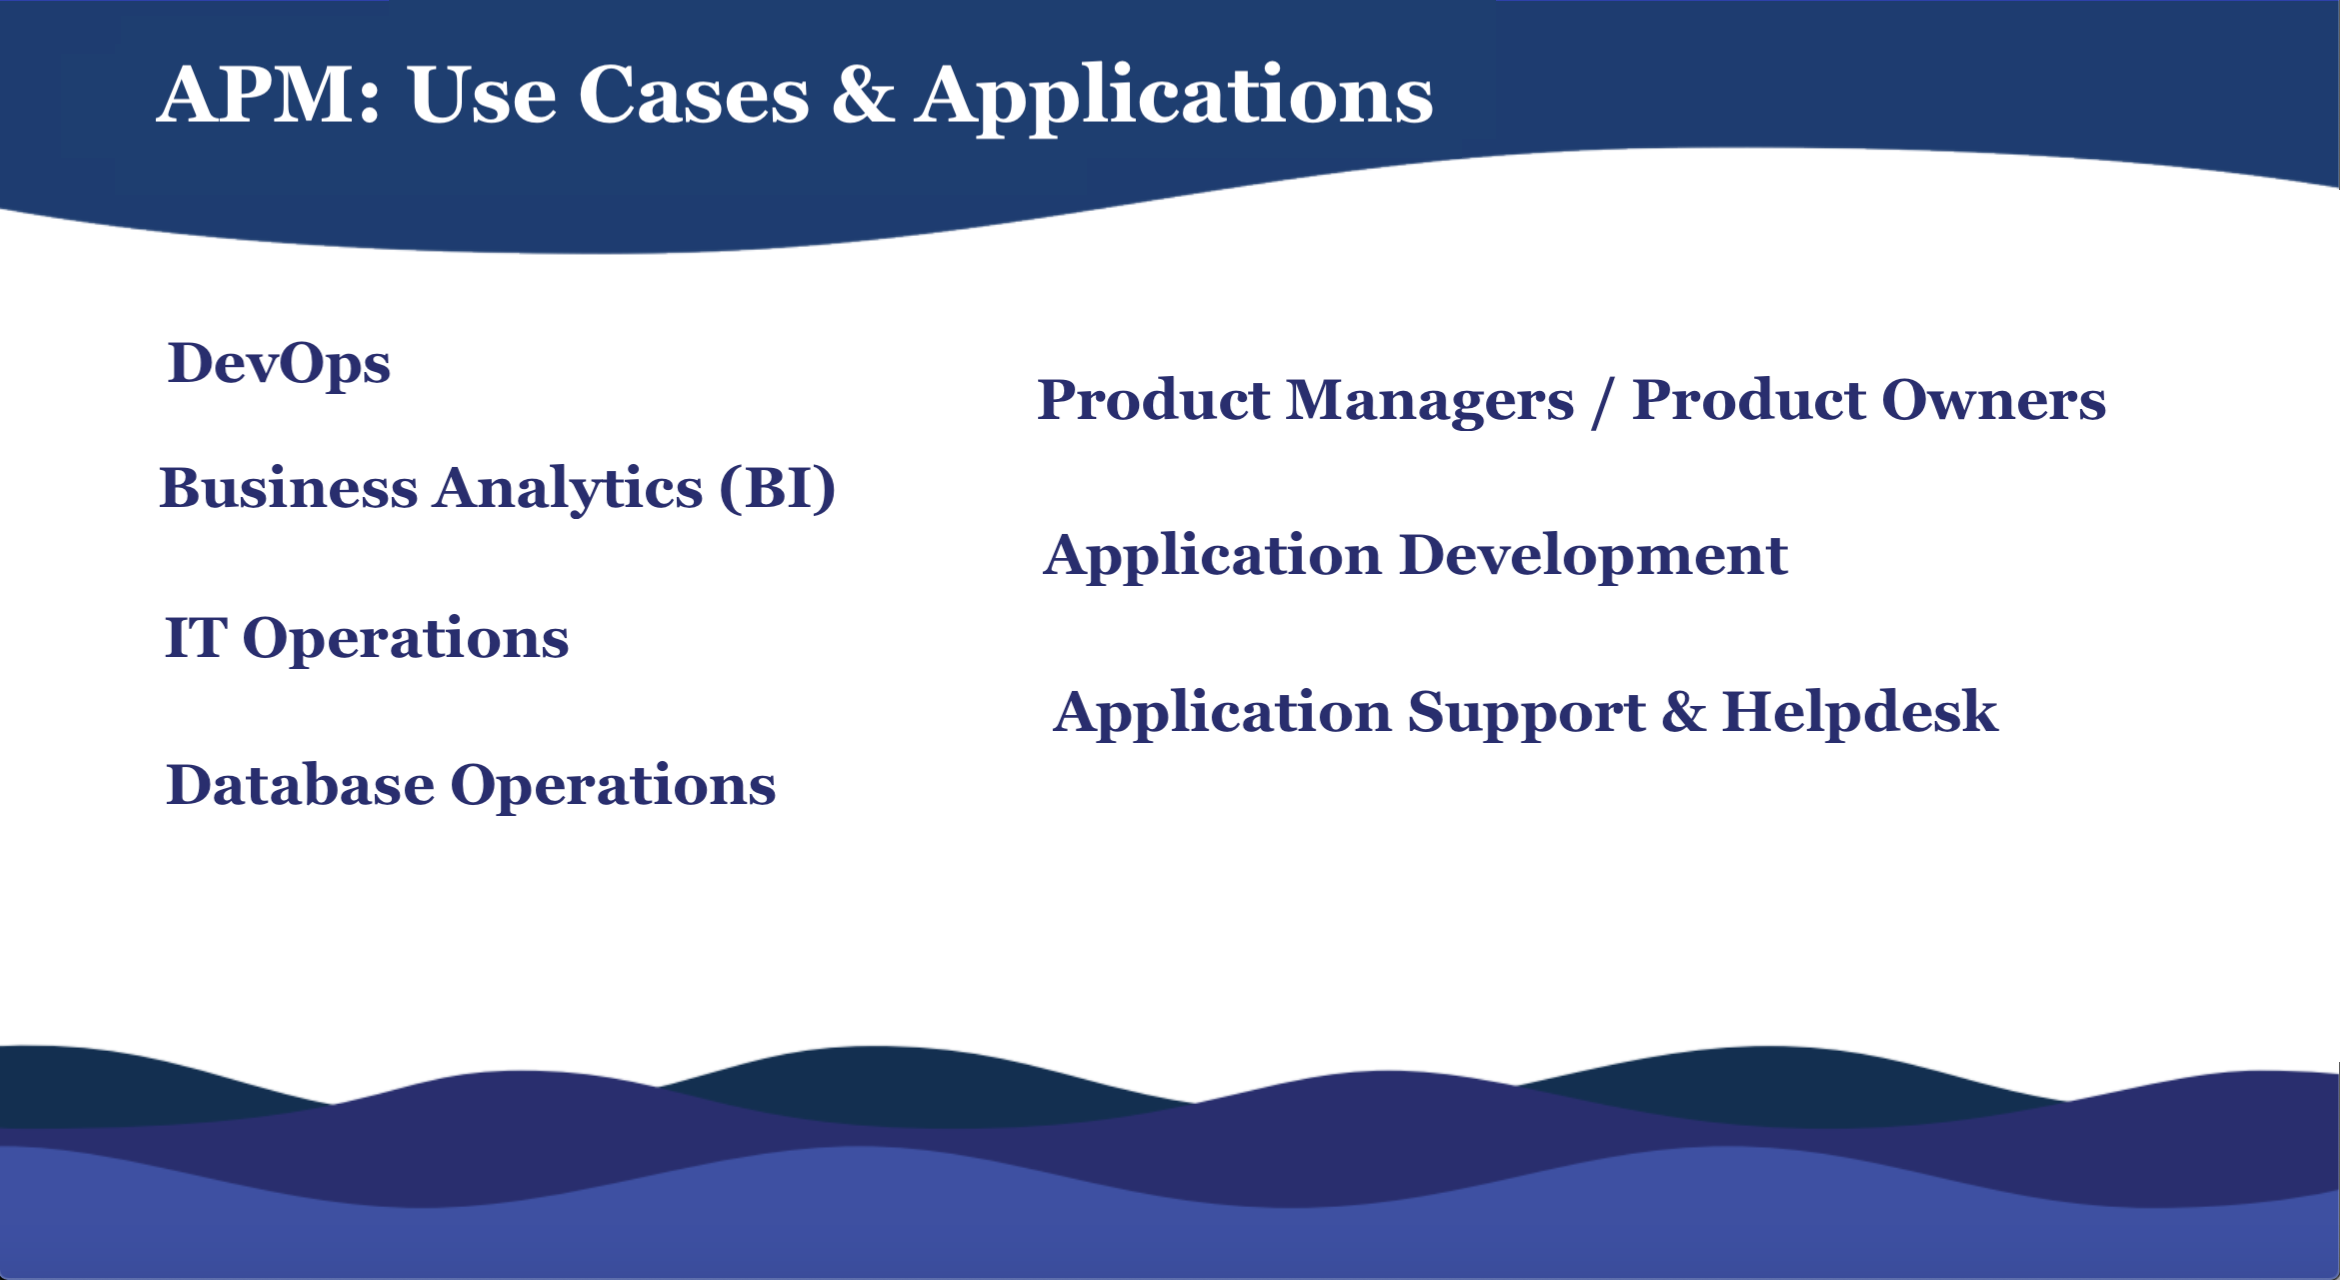 APM use cases and applications